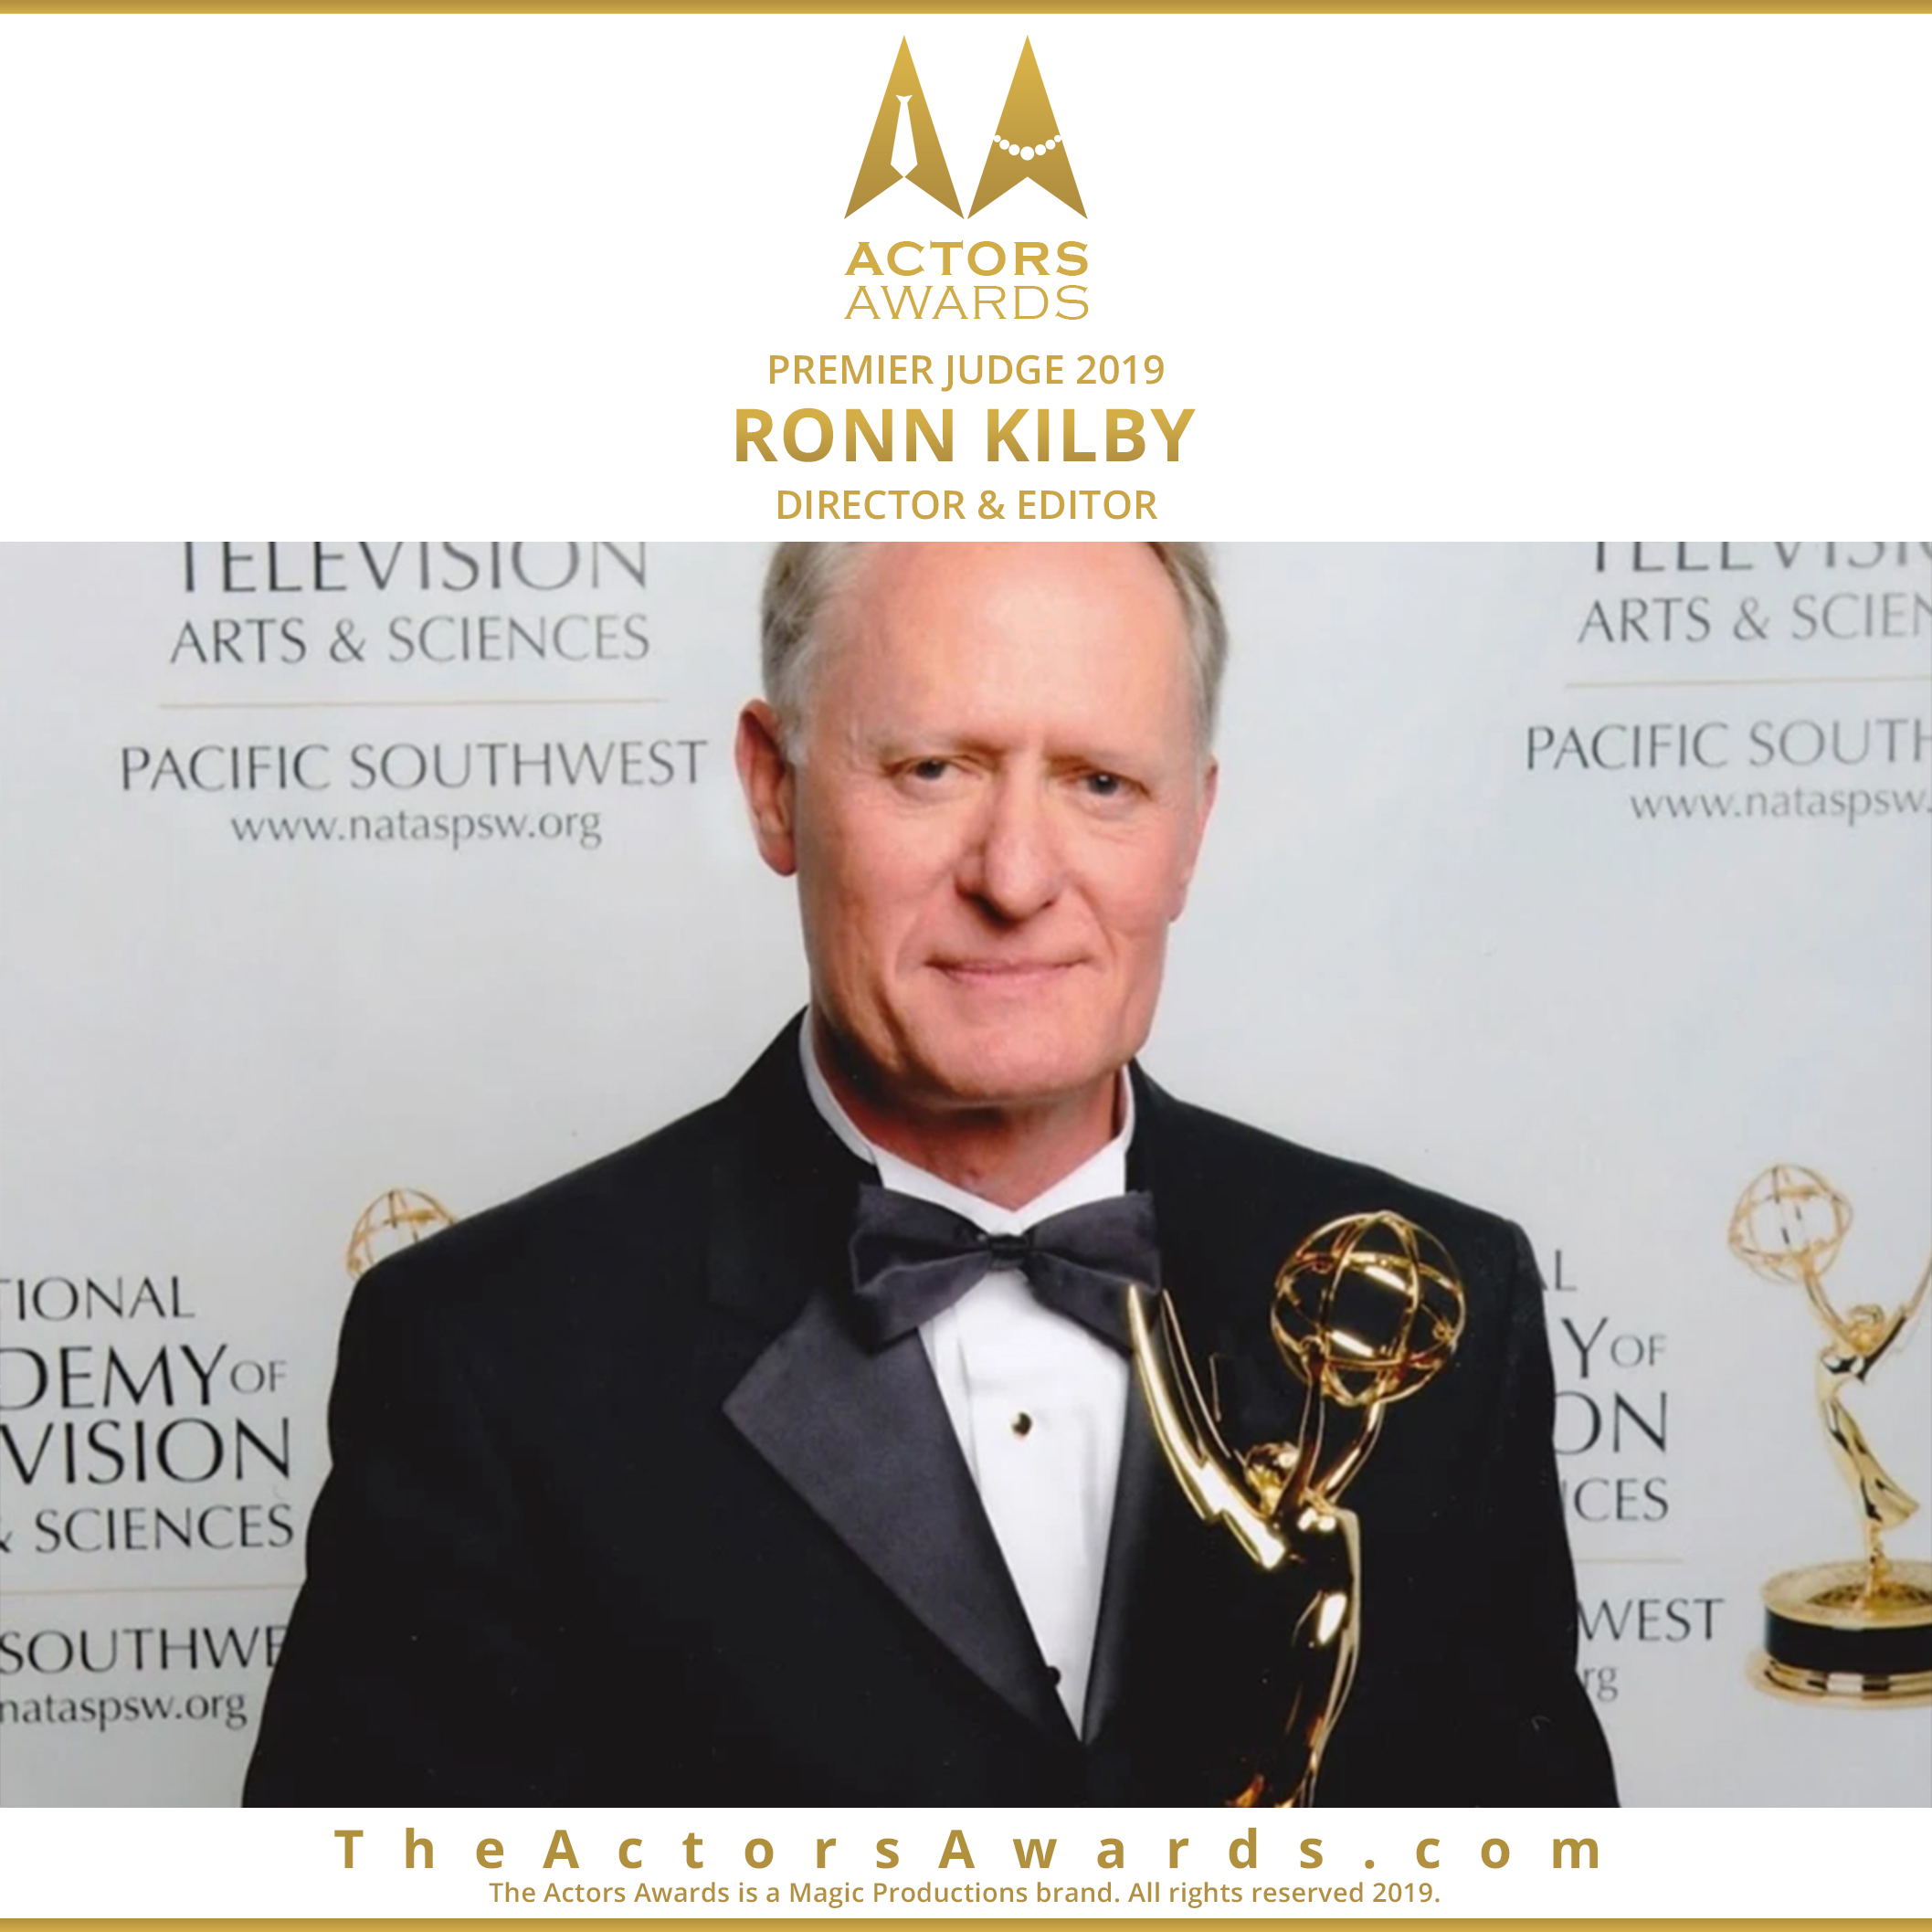 Actors Awards 2019 - Ronn Kilby